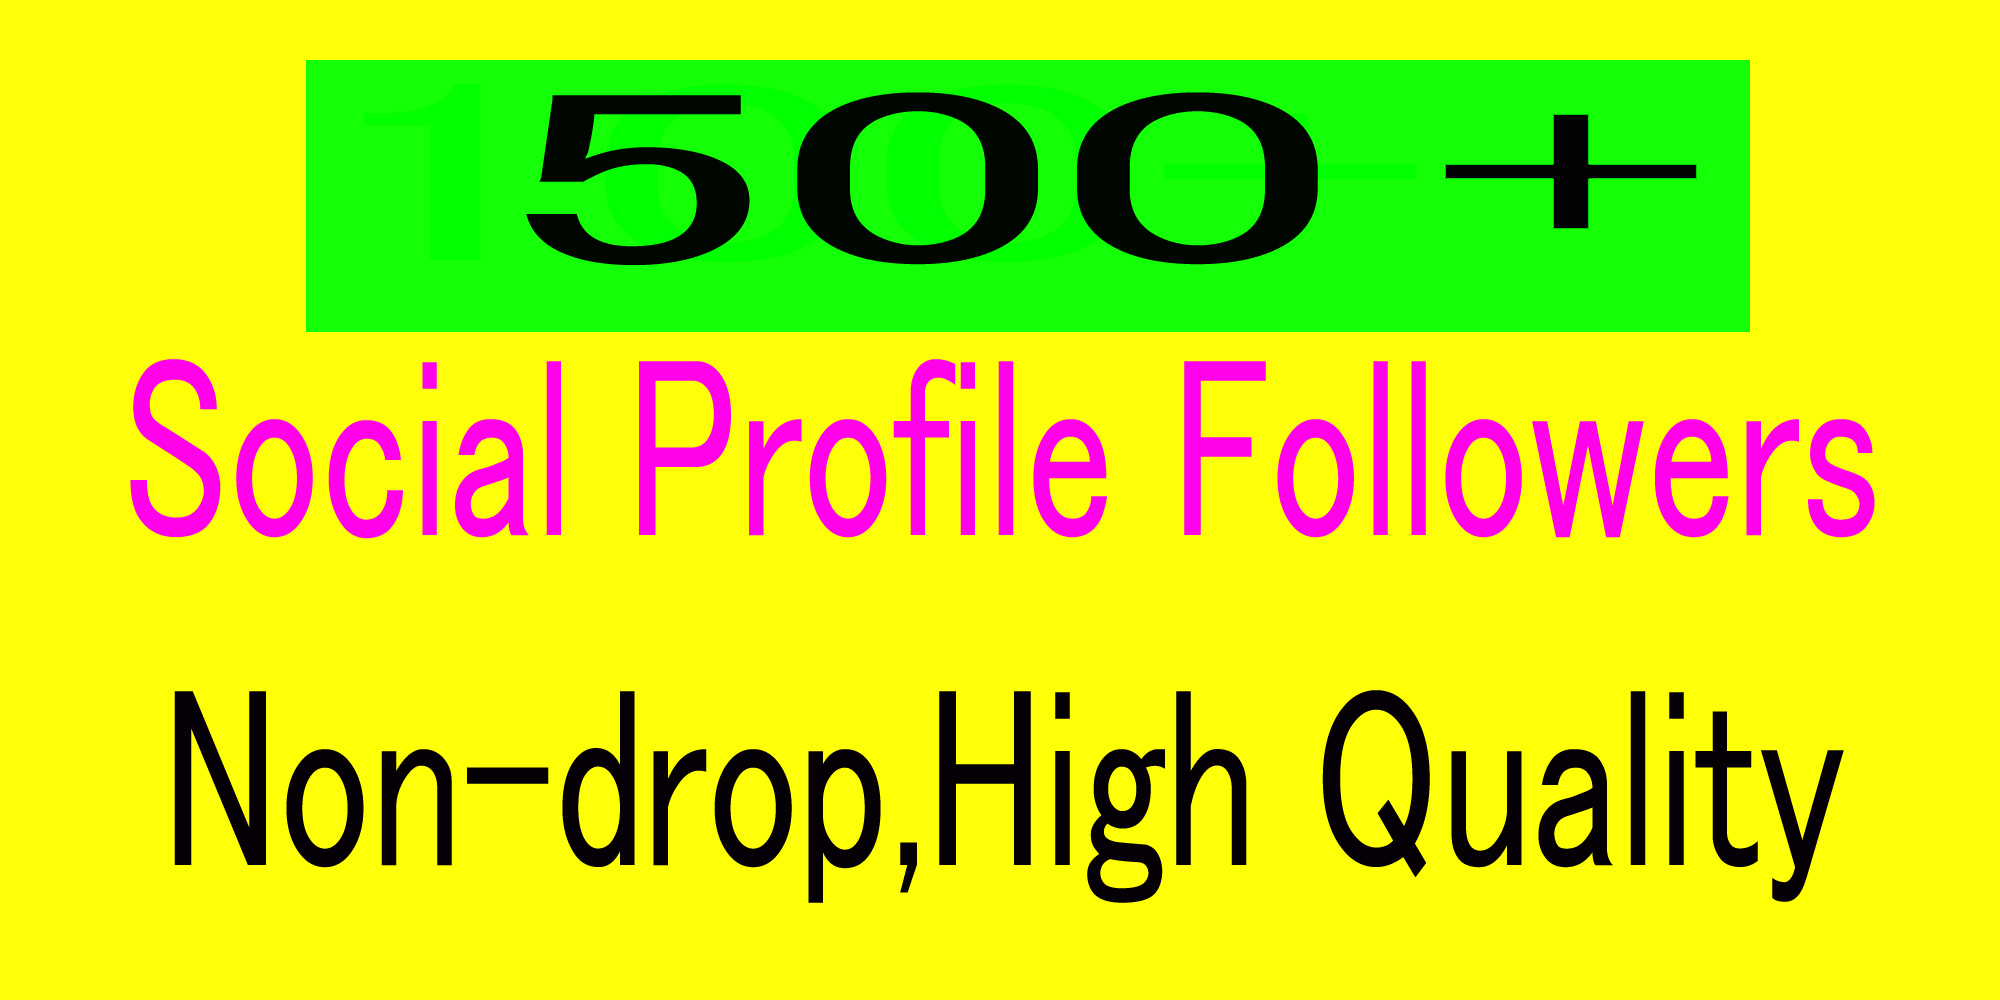 Organic High quality 500 Social media profile followers delivery in 12 hours